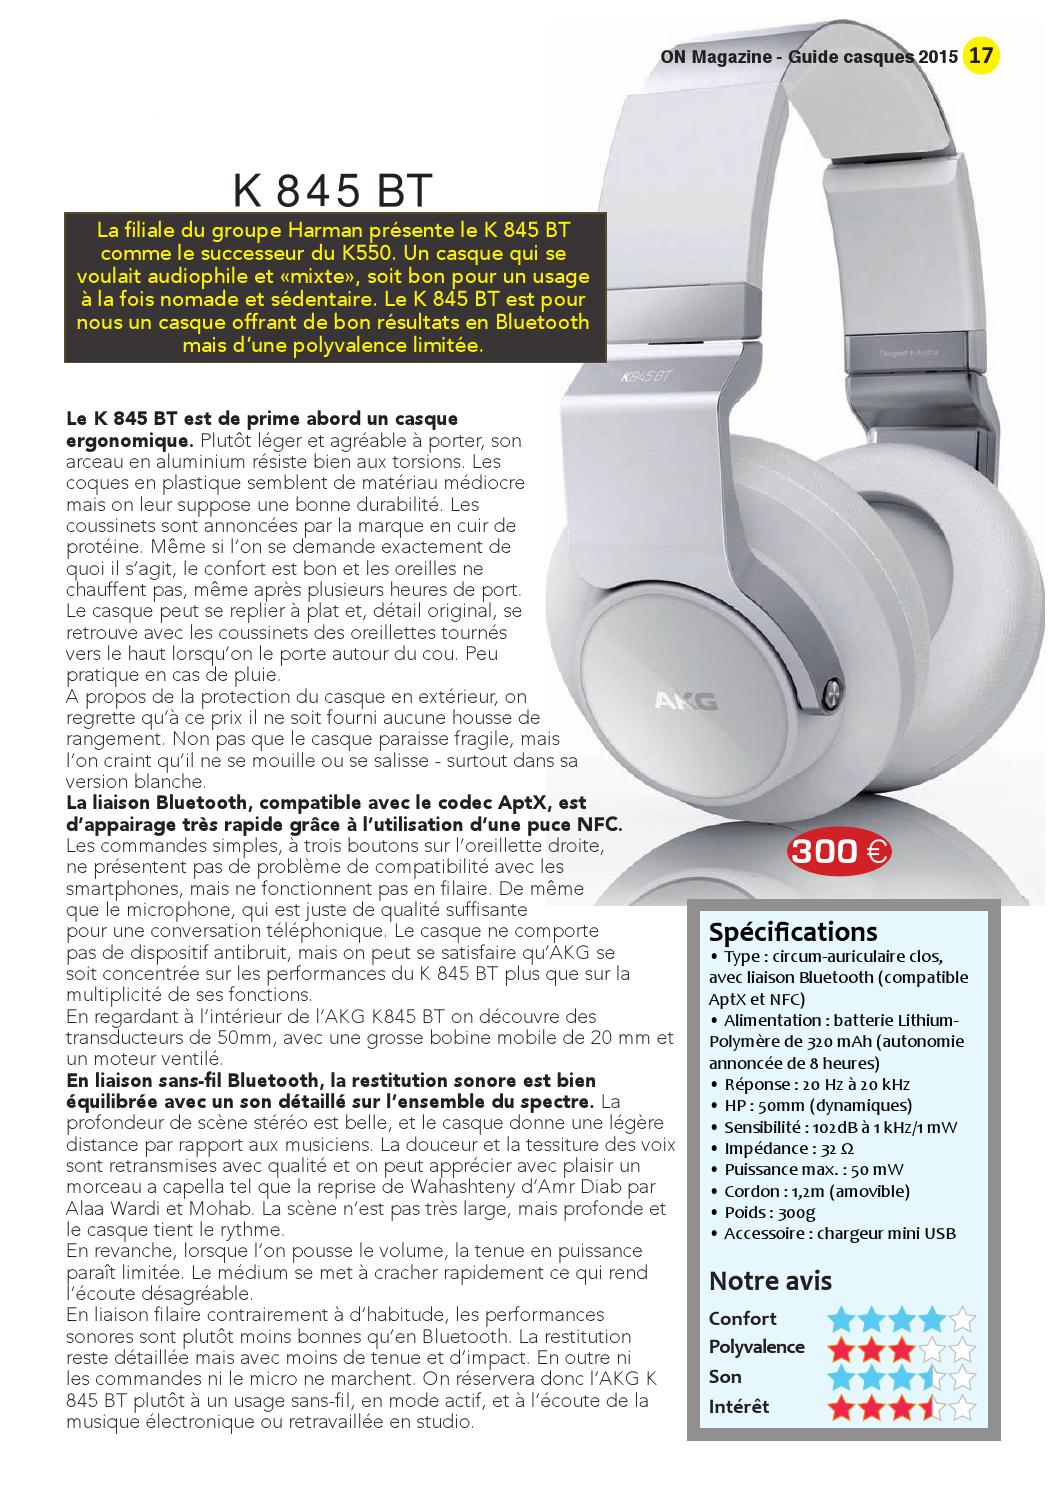 ON Magazine - Guide casques 2015 by ON Magazine